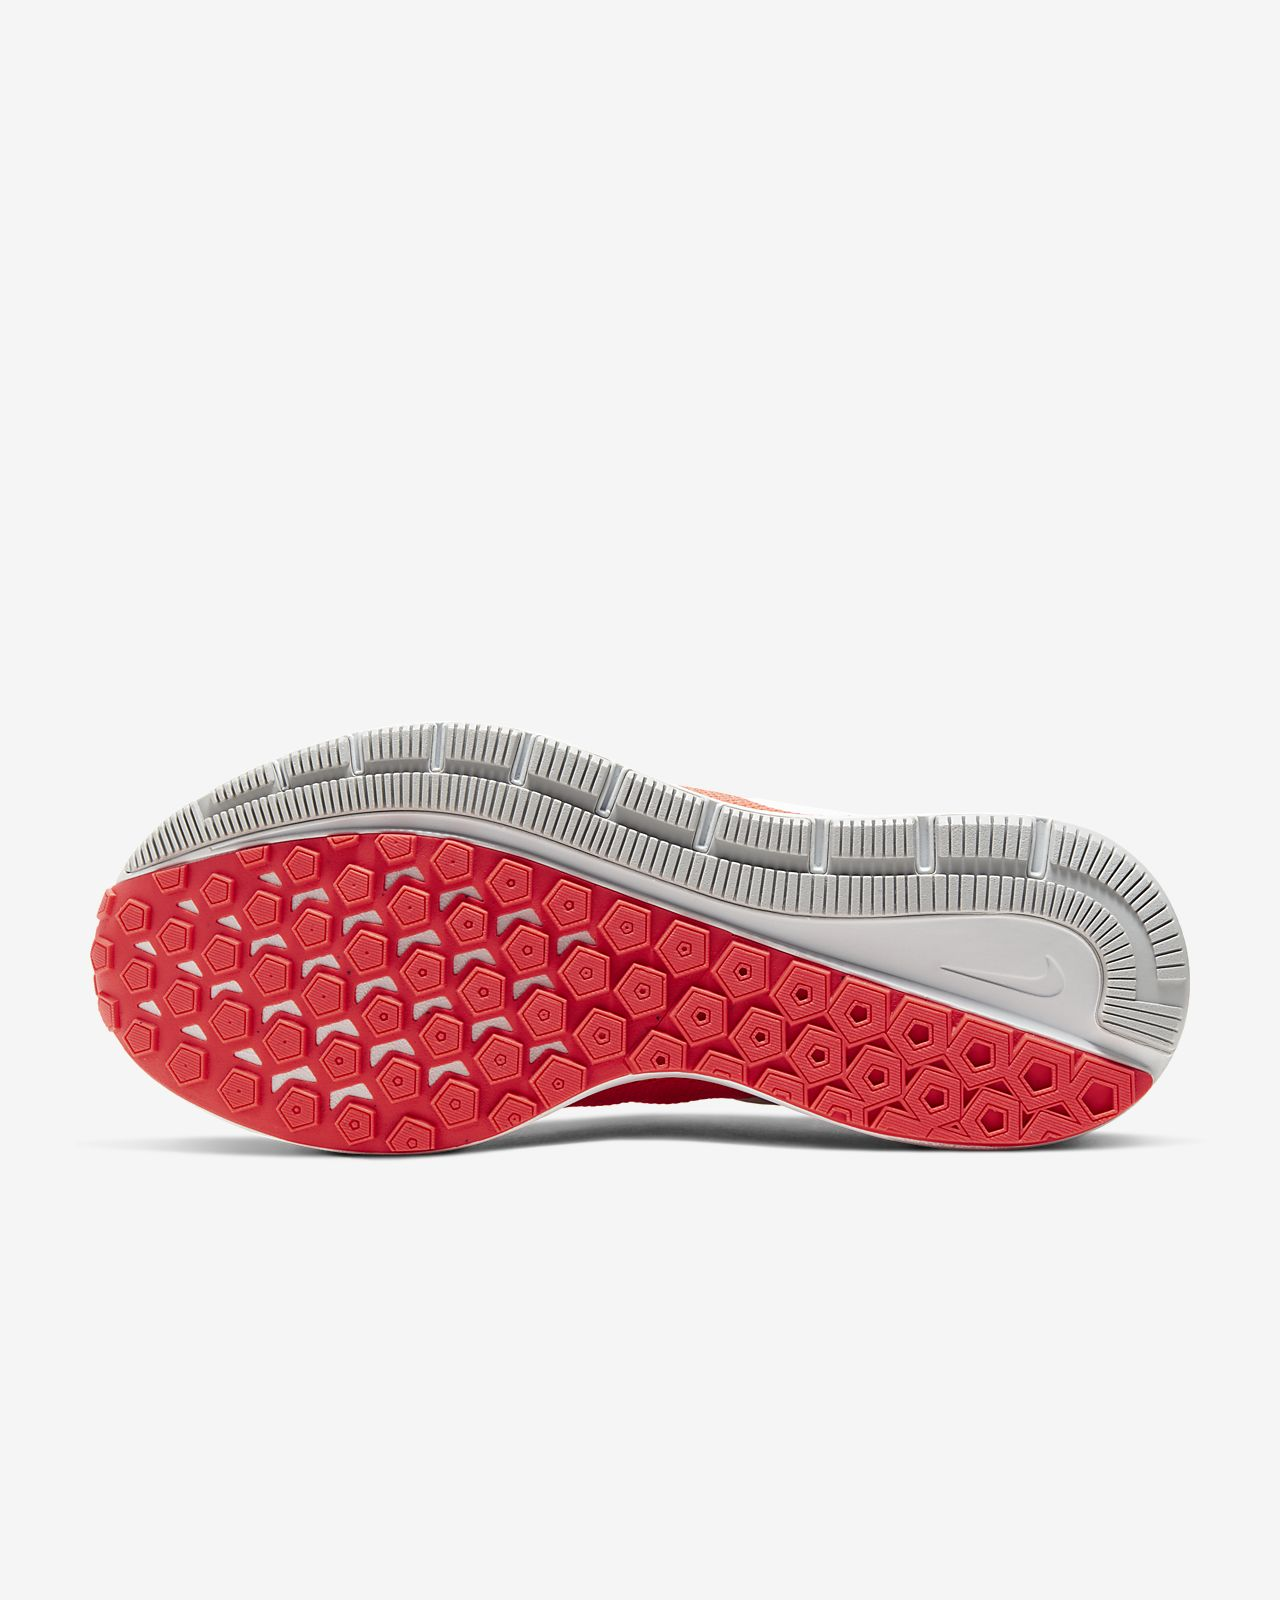 sold worldwide sells buying now Chaussure de running Nike Air Zoom Structure 22 pour Homme. Nike FR